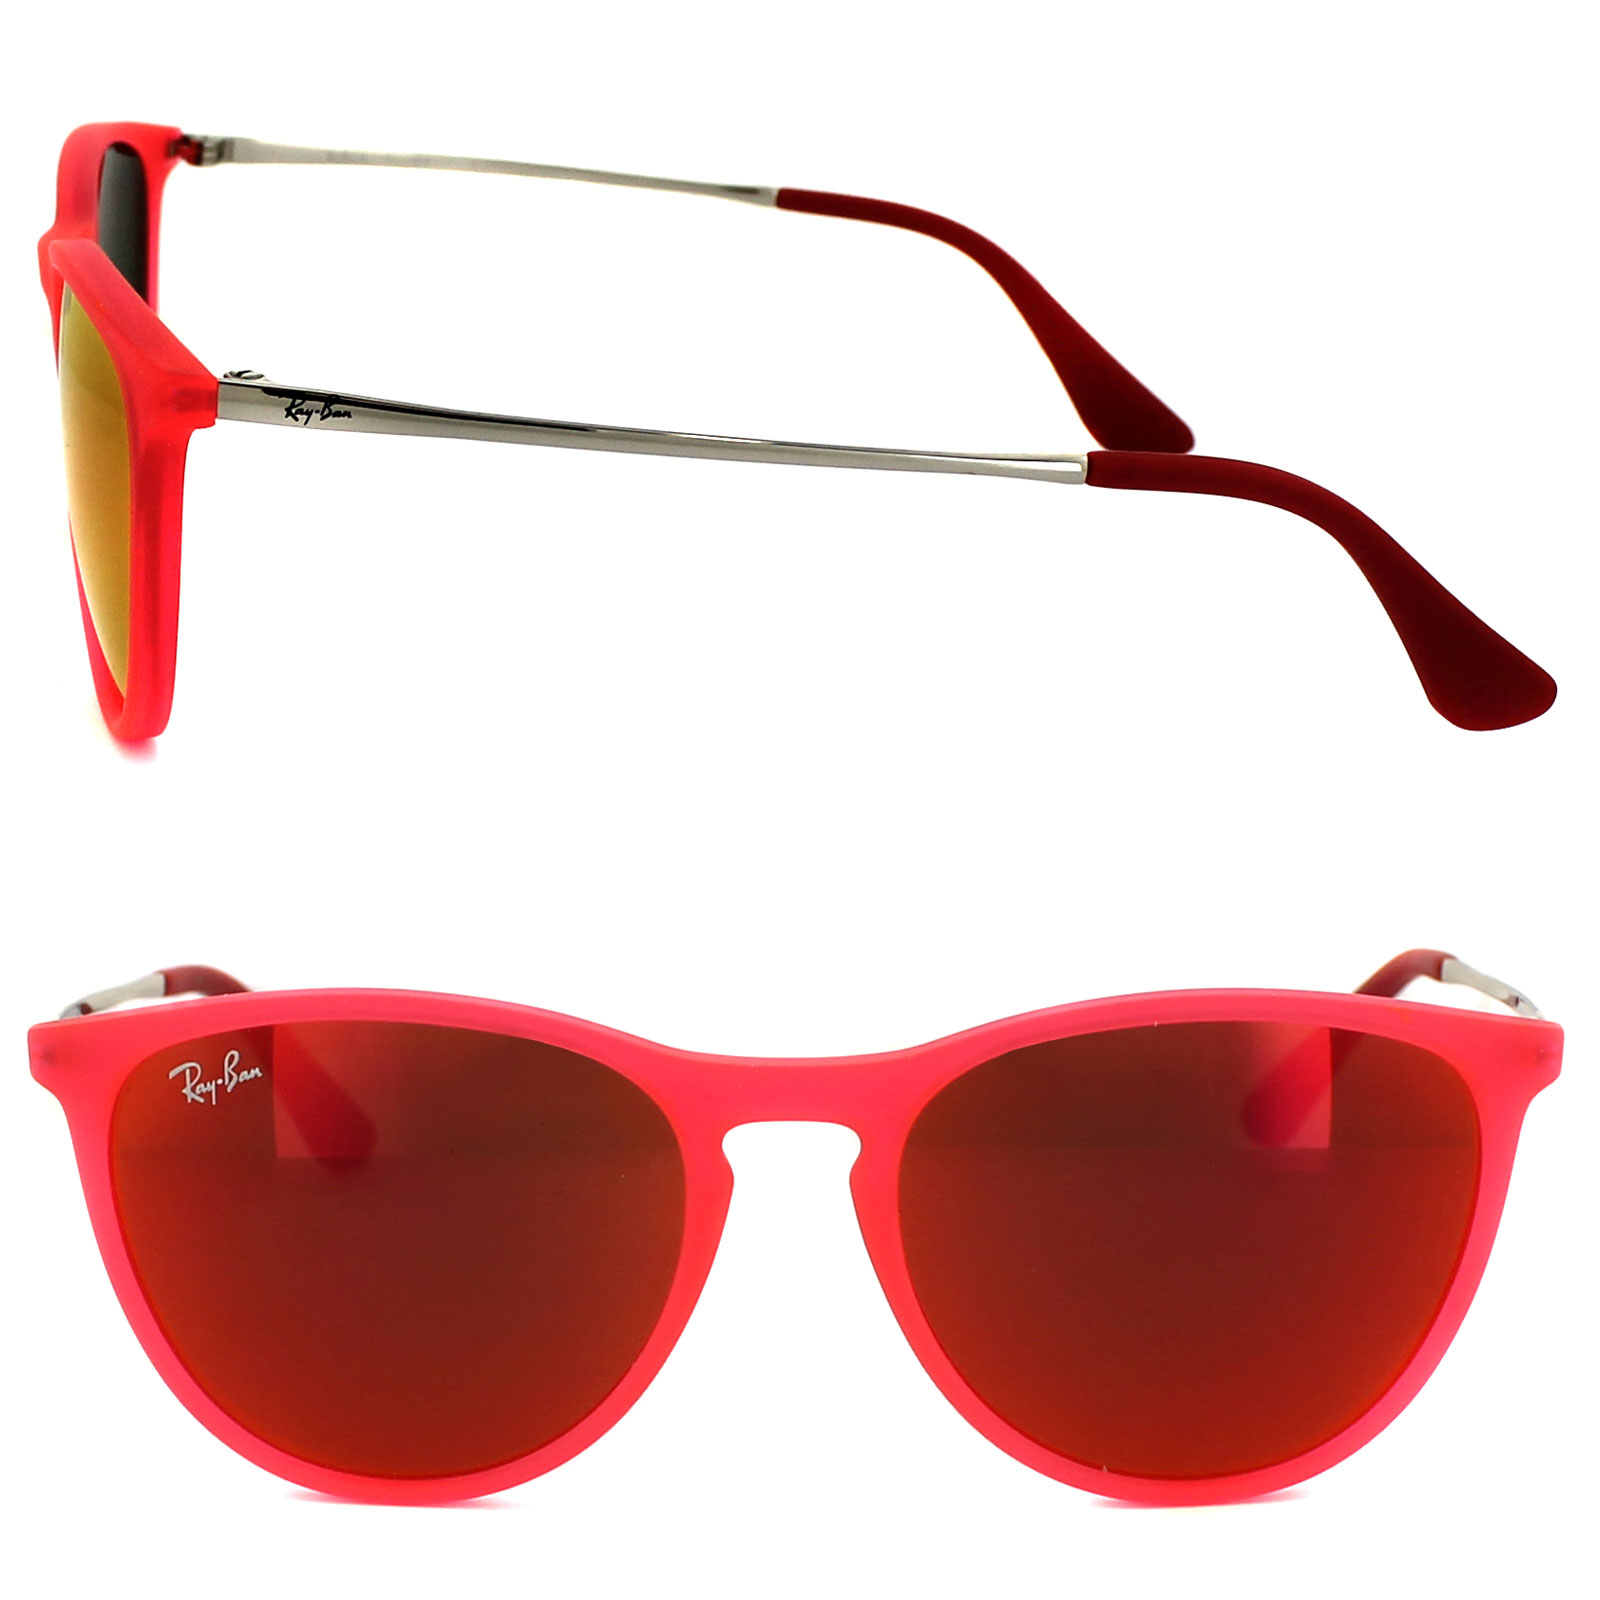 5030073c32c93 Sentinel Ray-Ban Junior Sunglasses Izzy 9060 70096Q Rubber Pink Red Mirror